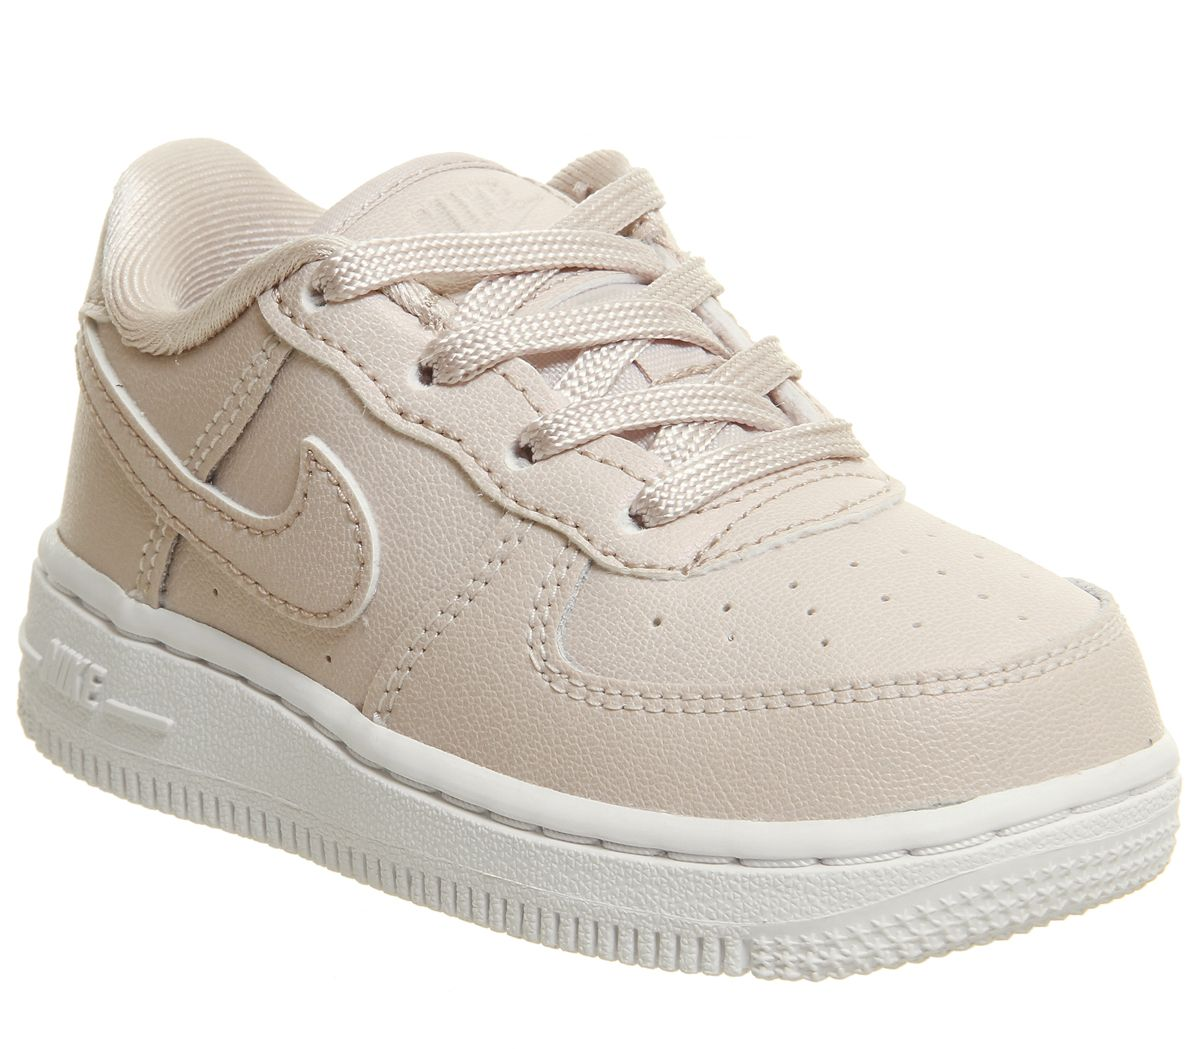 sale retailer bf863 f6981 Nike Air Force 1 Infant Trainers Silt Red White - Unisex